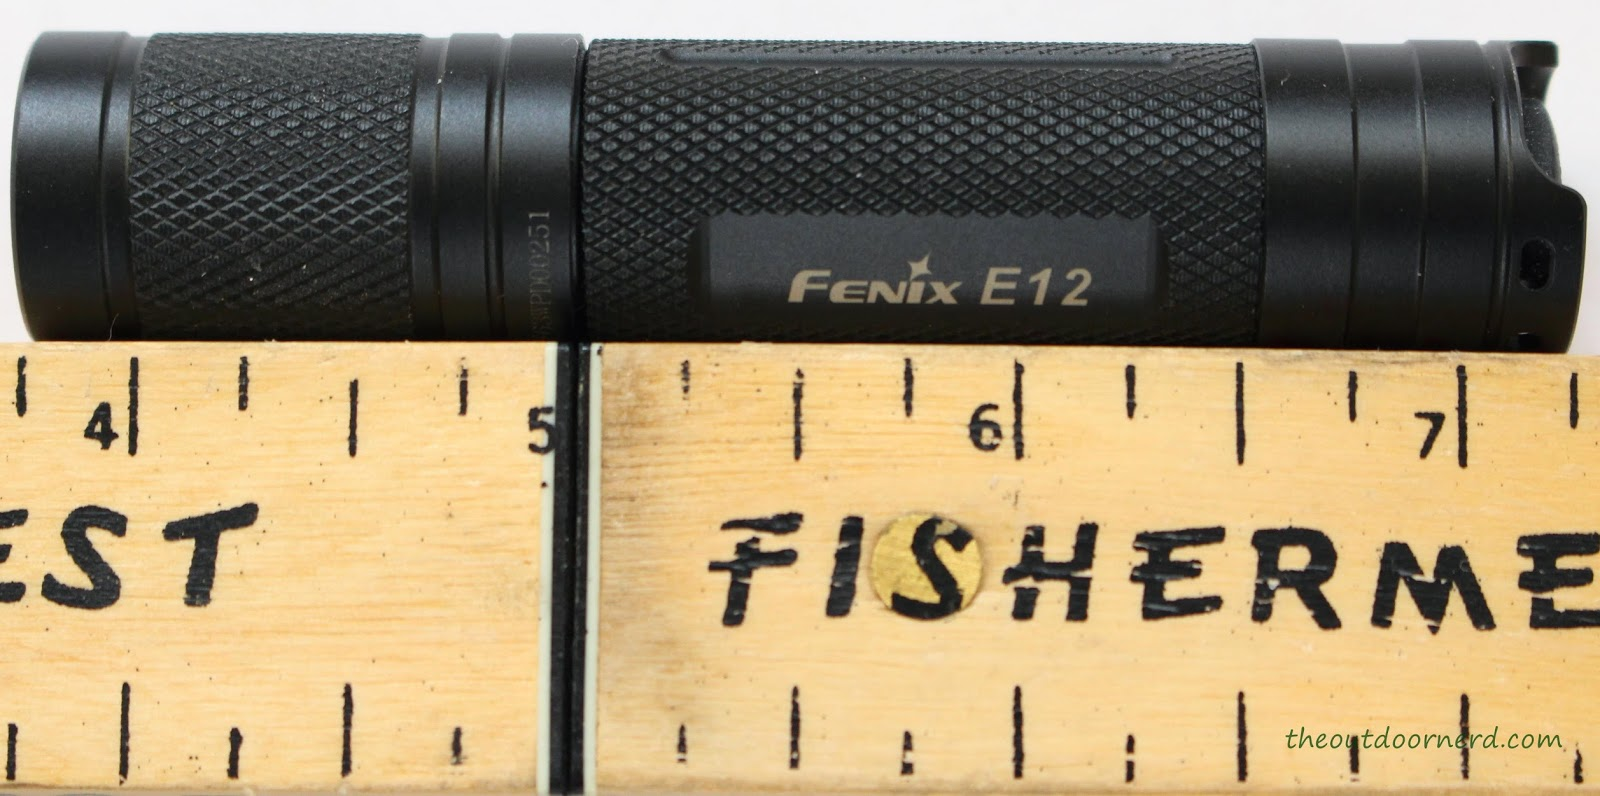 Fenix E12 1xAA EDC Flashlight Next To Ruler